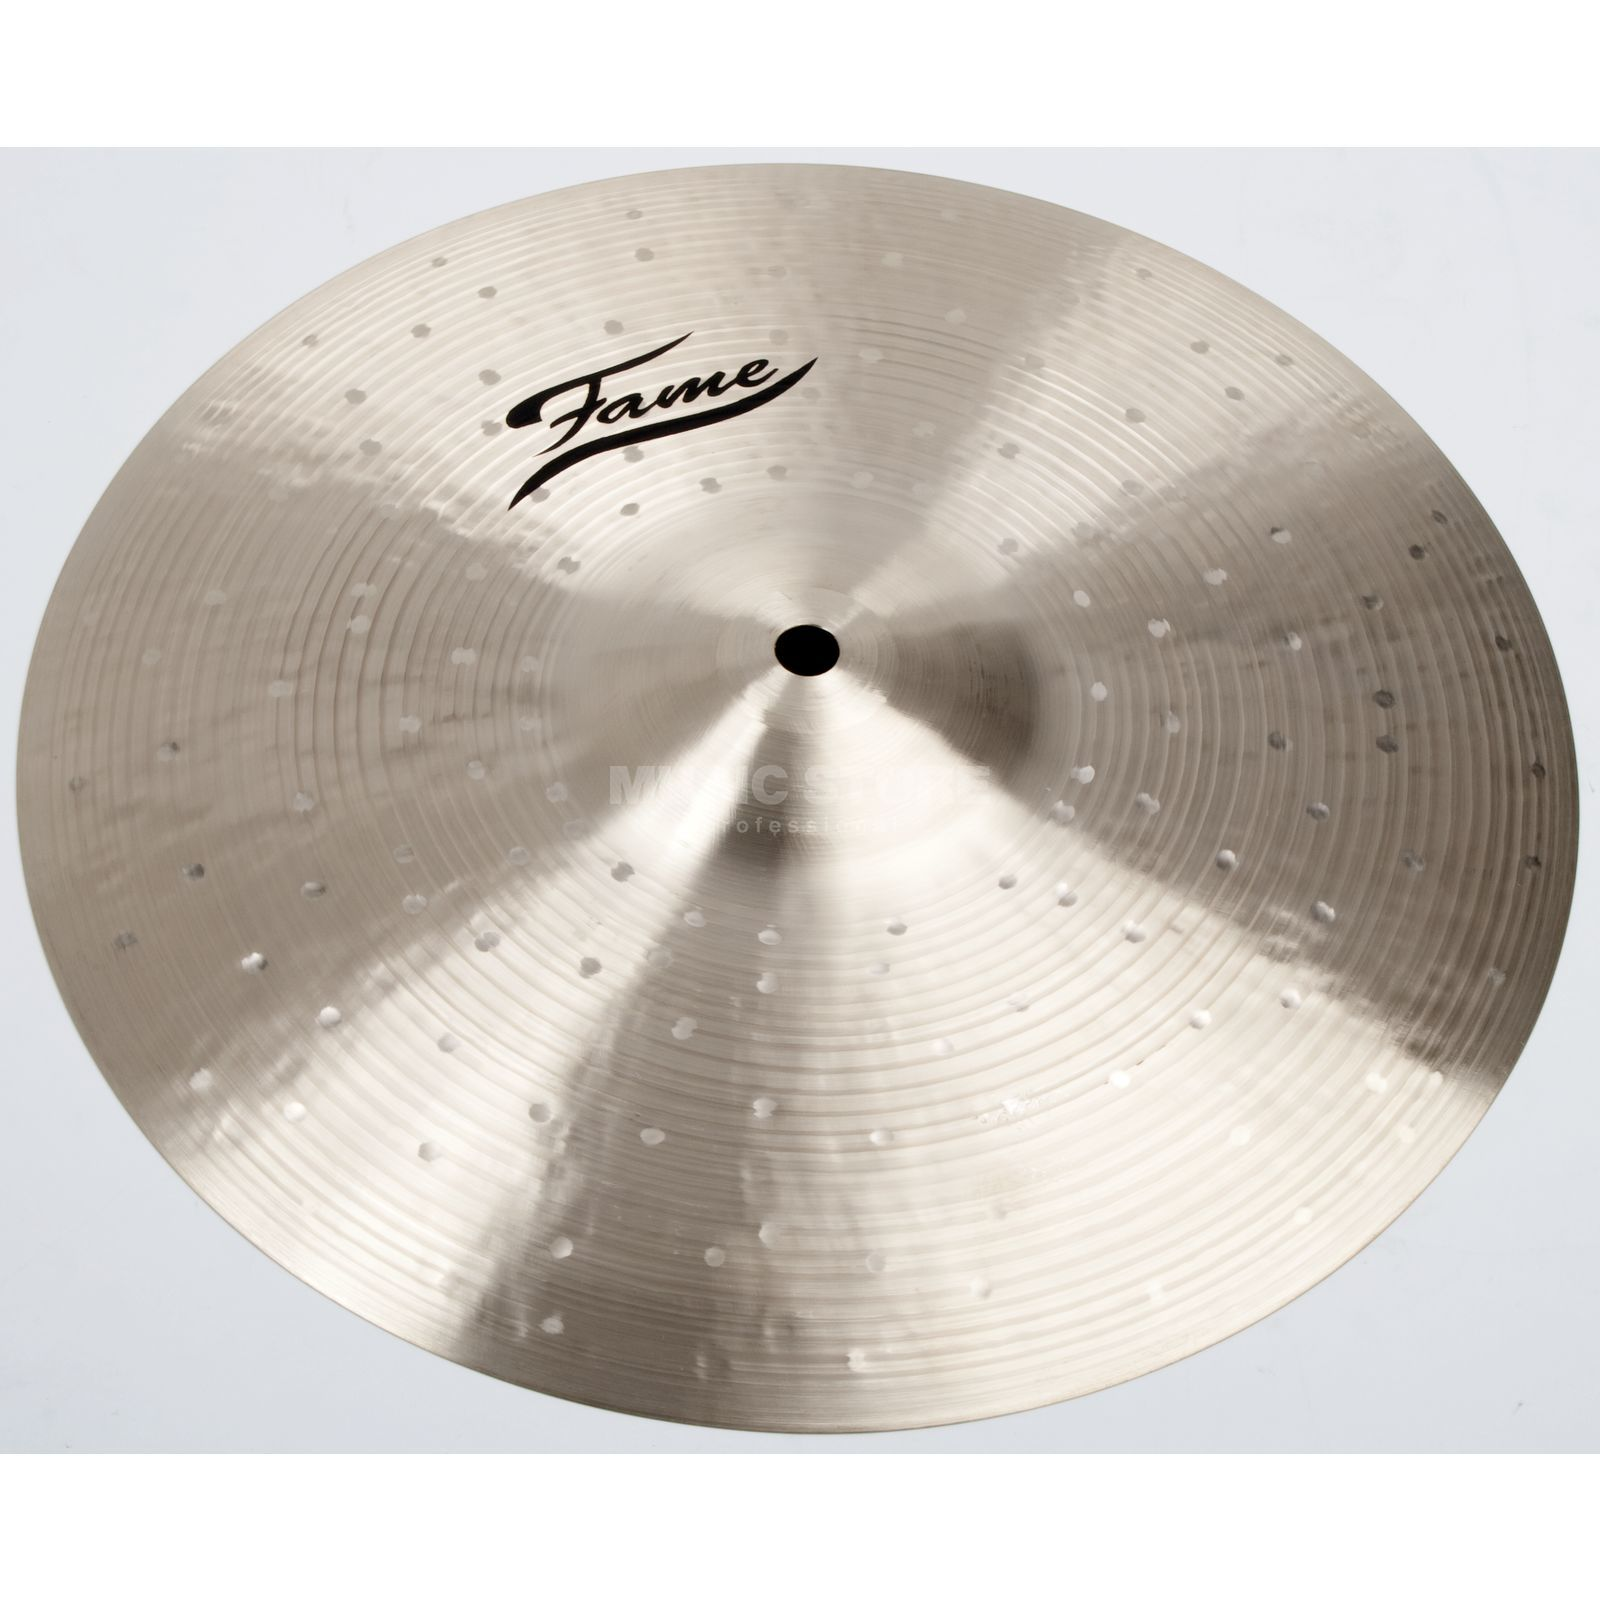 "Fame Masters B20 Splash 12"" Natural Finish Zdjęcie produktu"